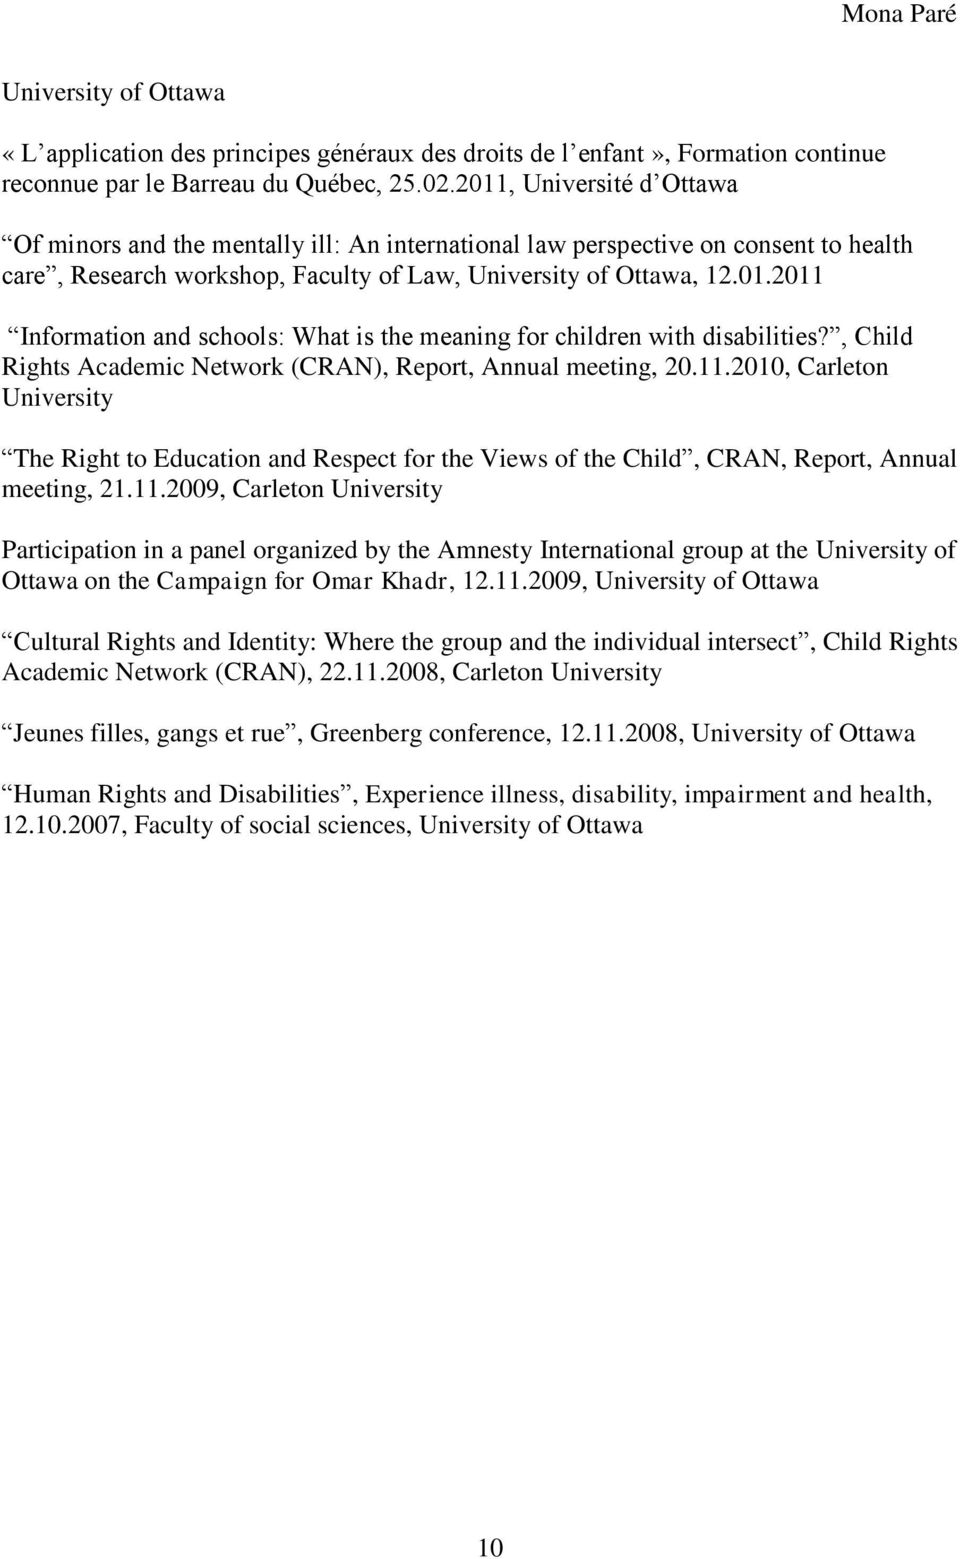 , Child Rights Academic Network (CRAN), Report, Annual meeting, 20.11.